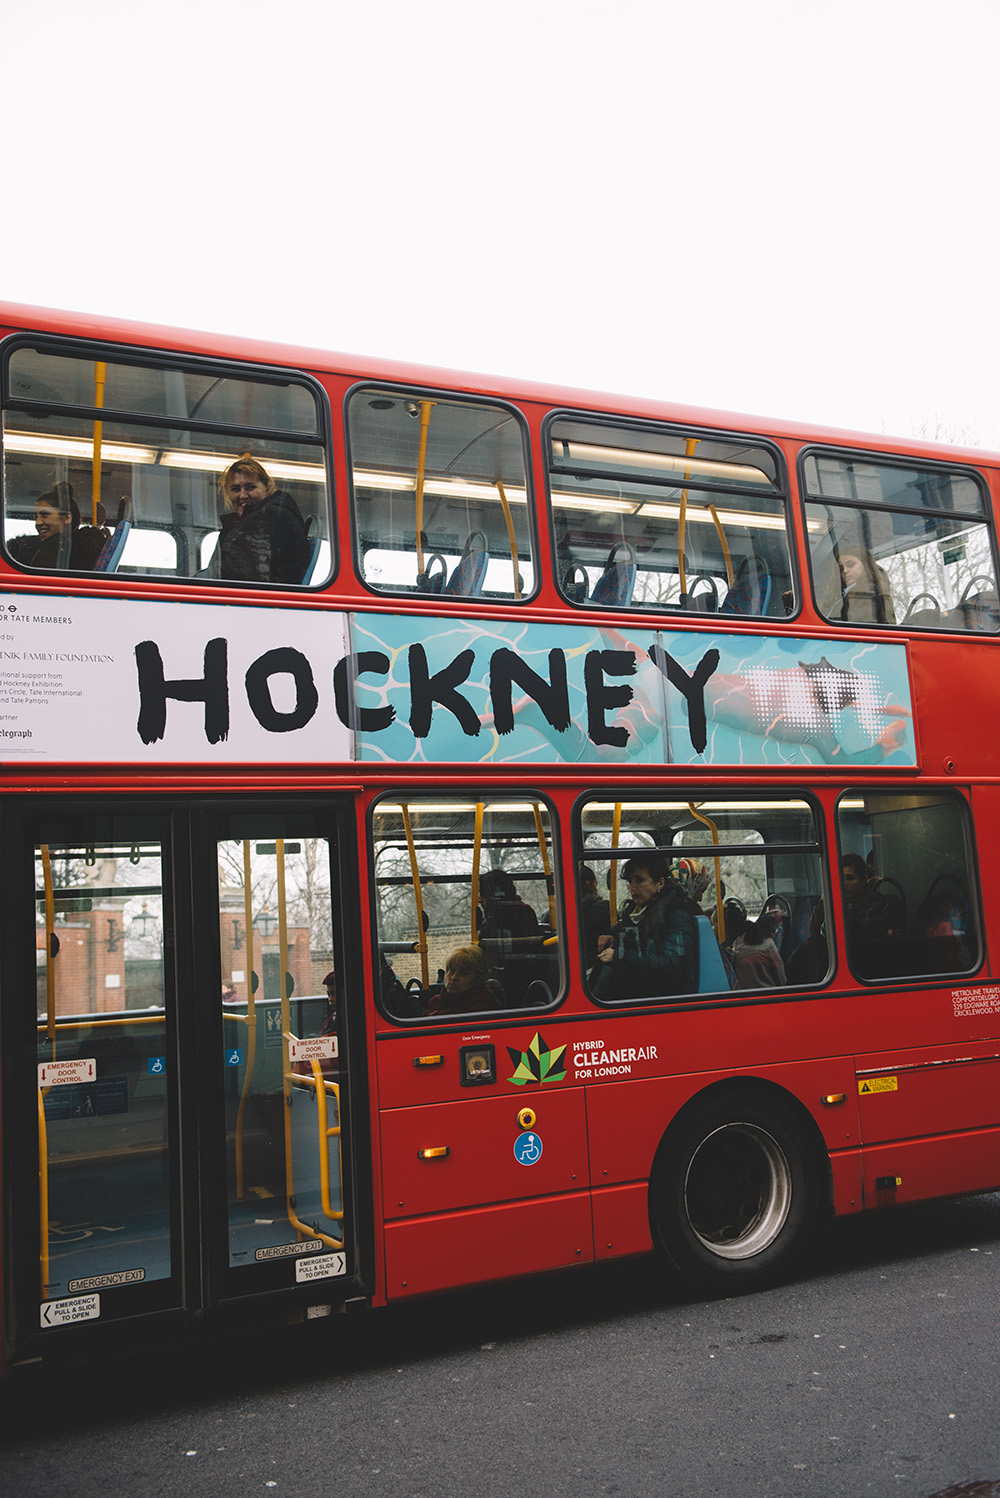 The Petticoat - London Fashion Week 17 -Photo Diary Hockney bus